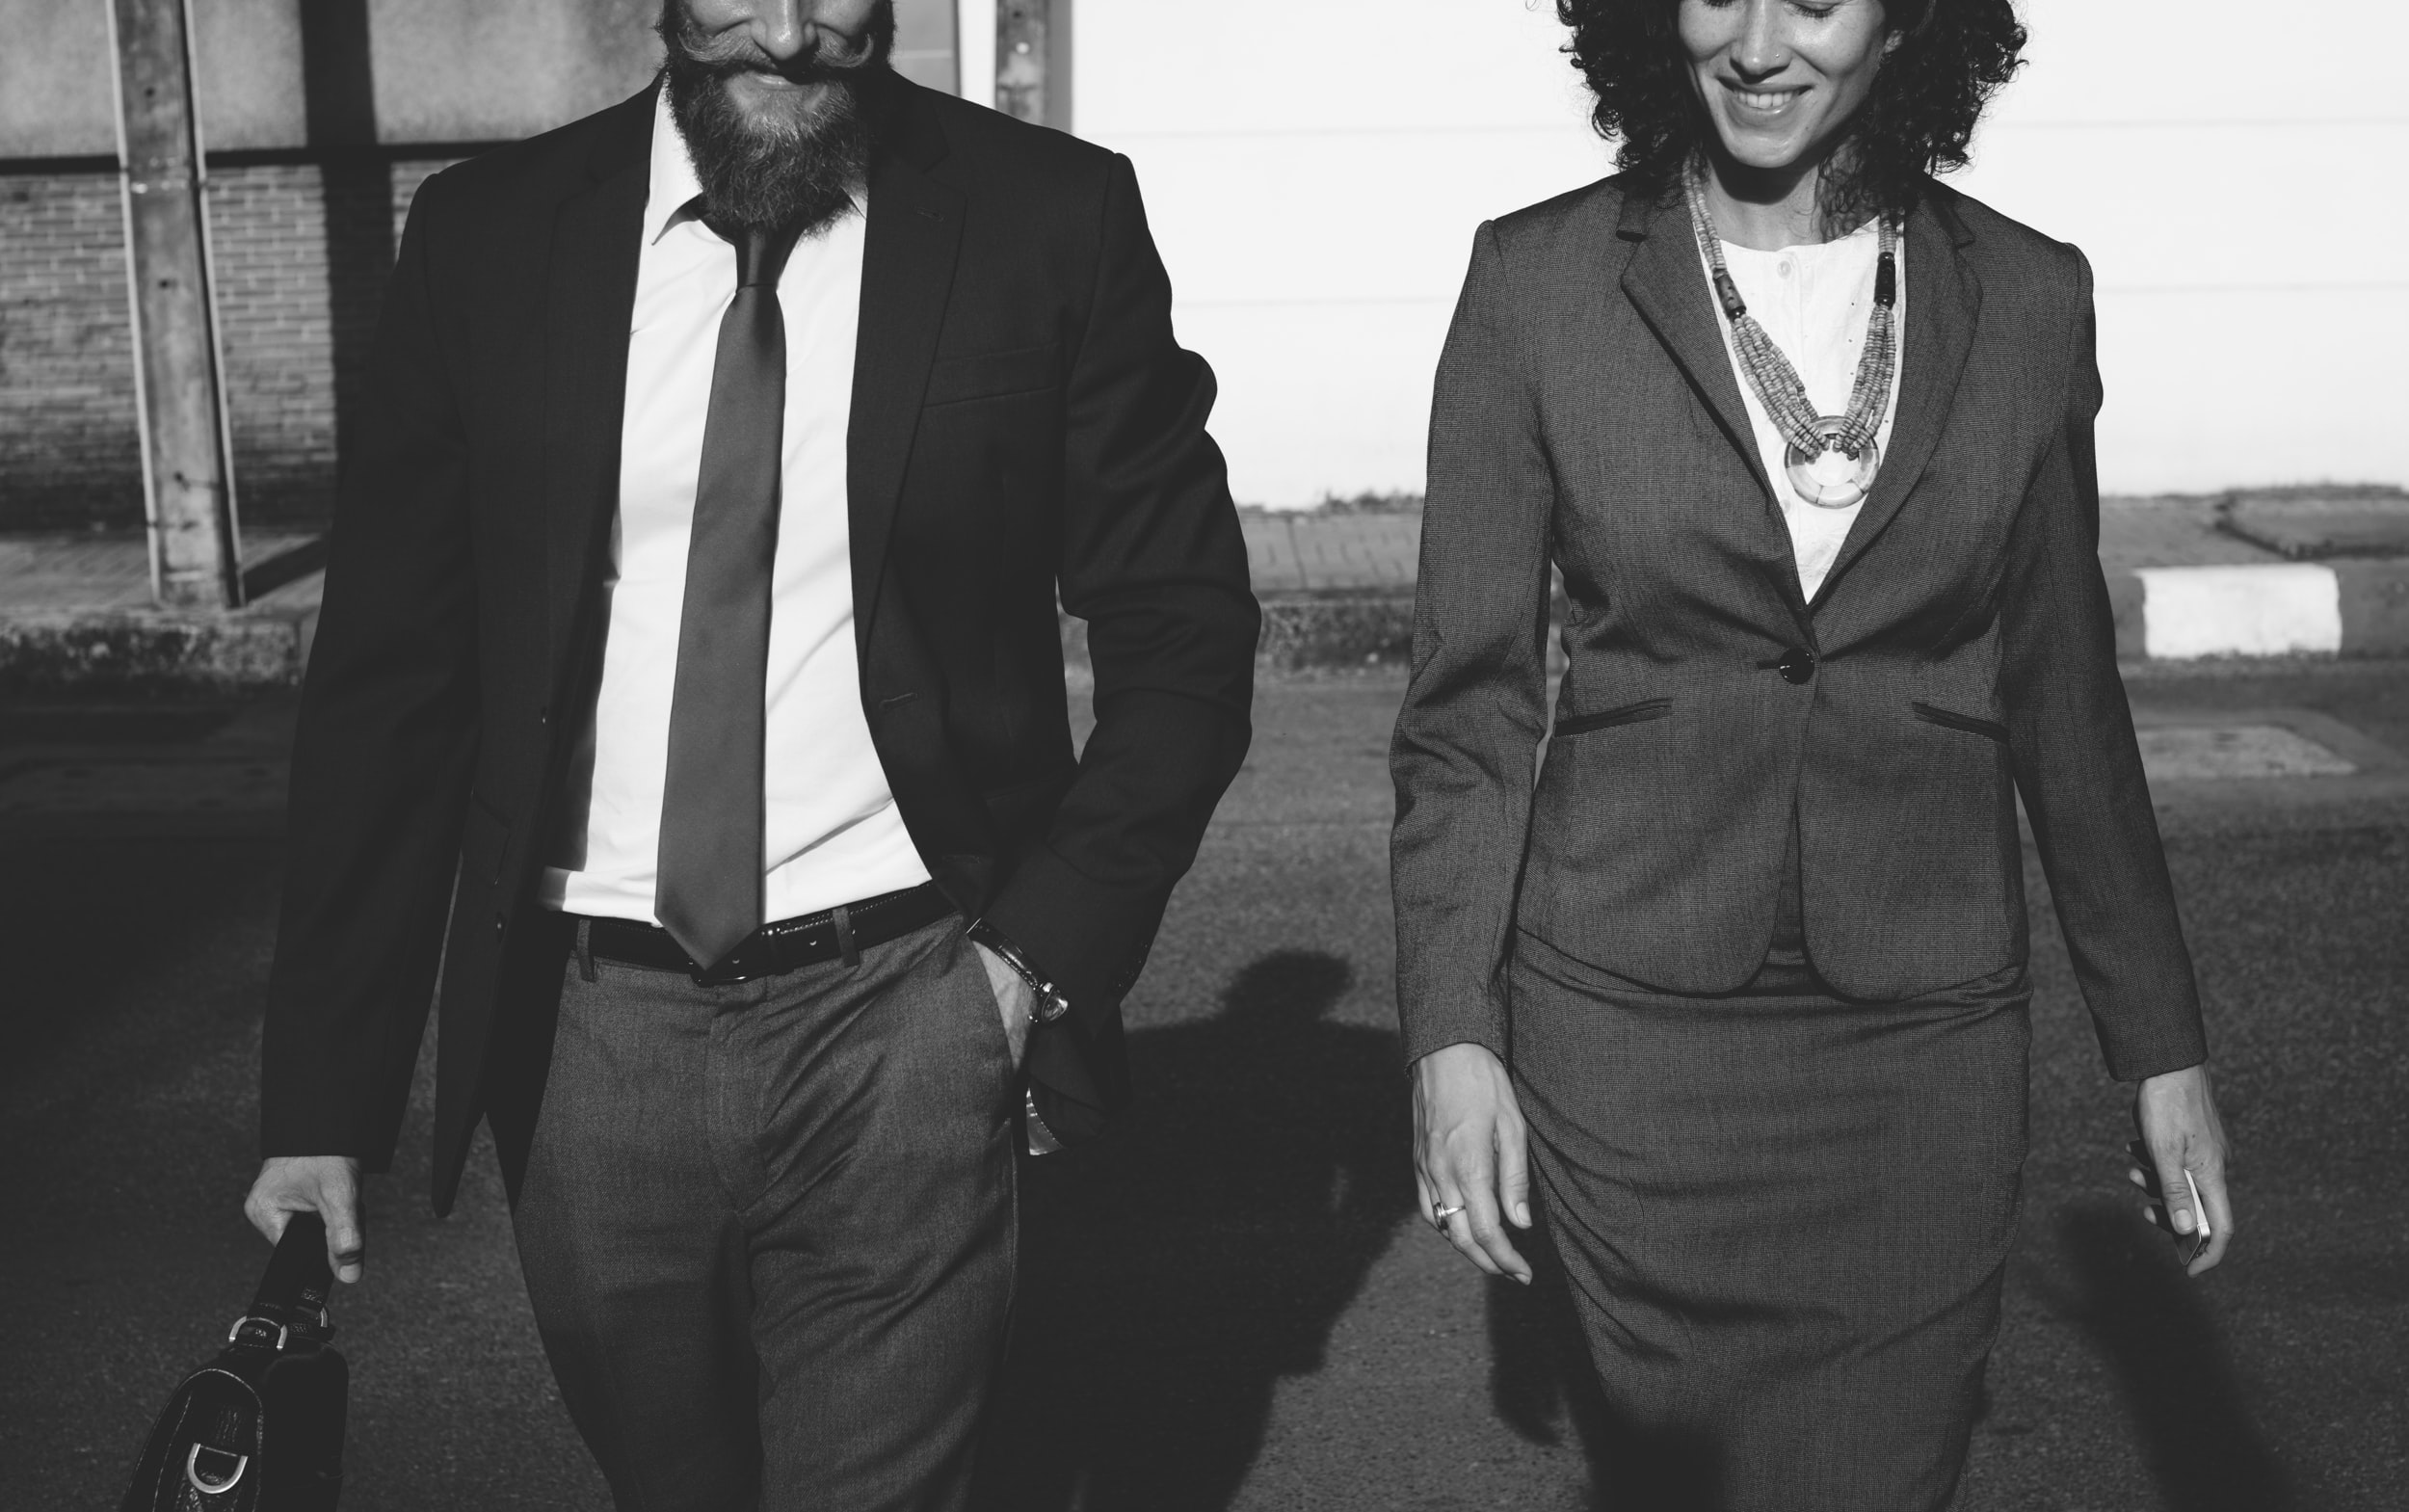 grayscale photography of man standing beside woman while holding handbag